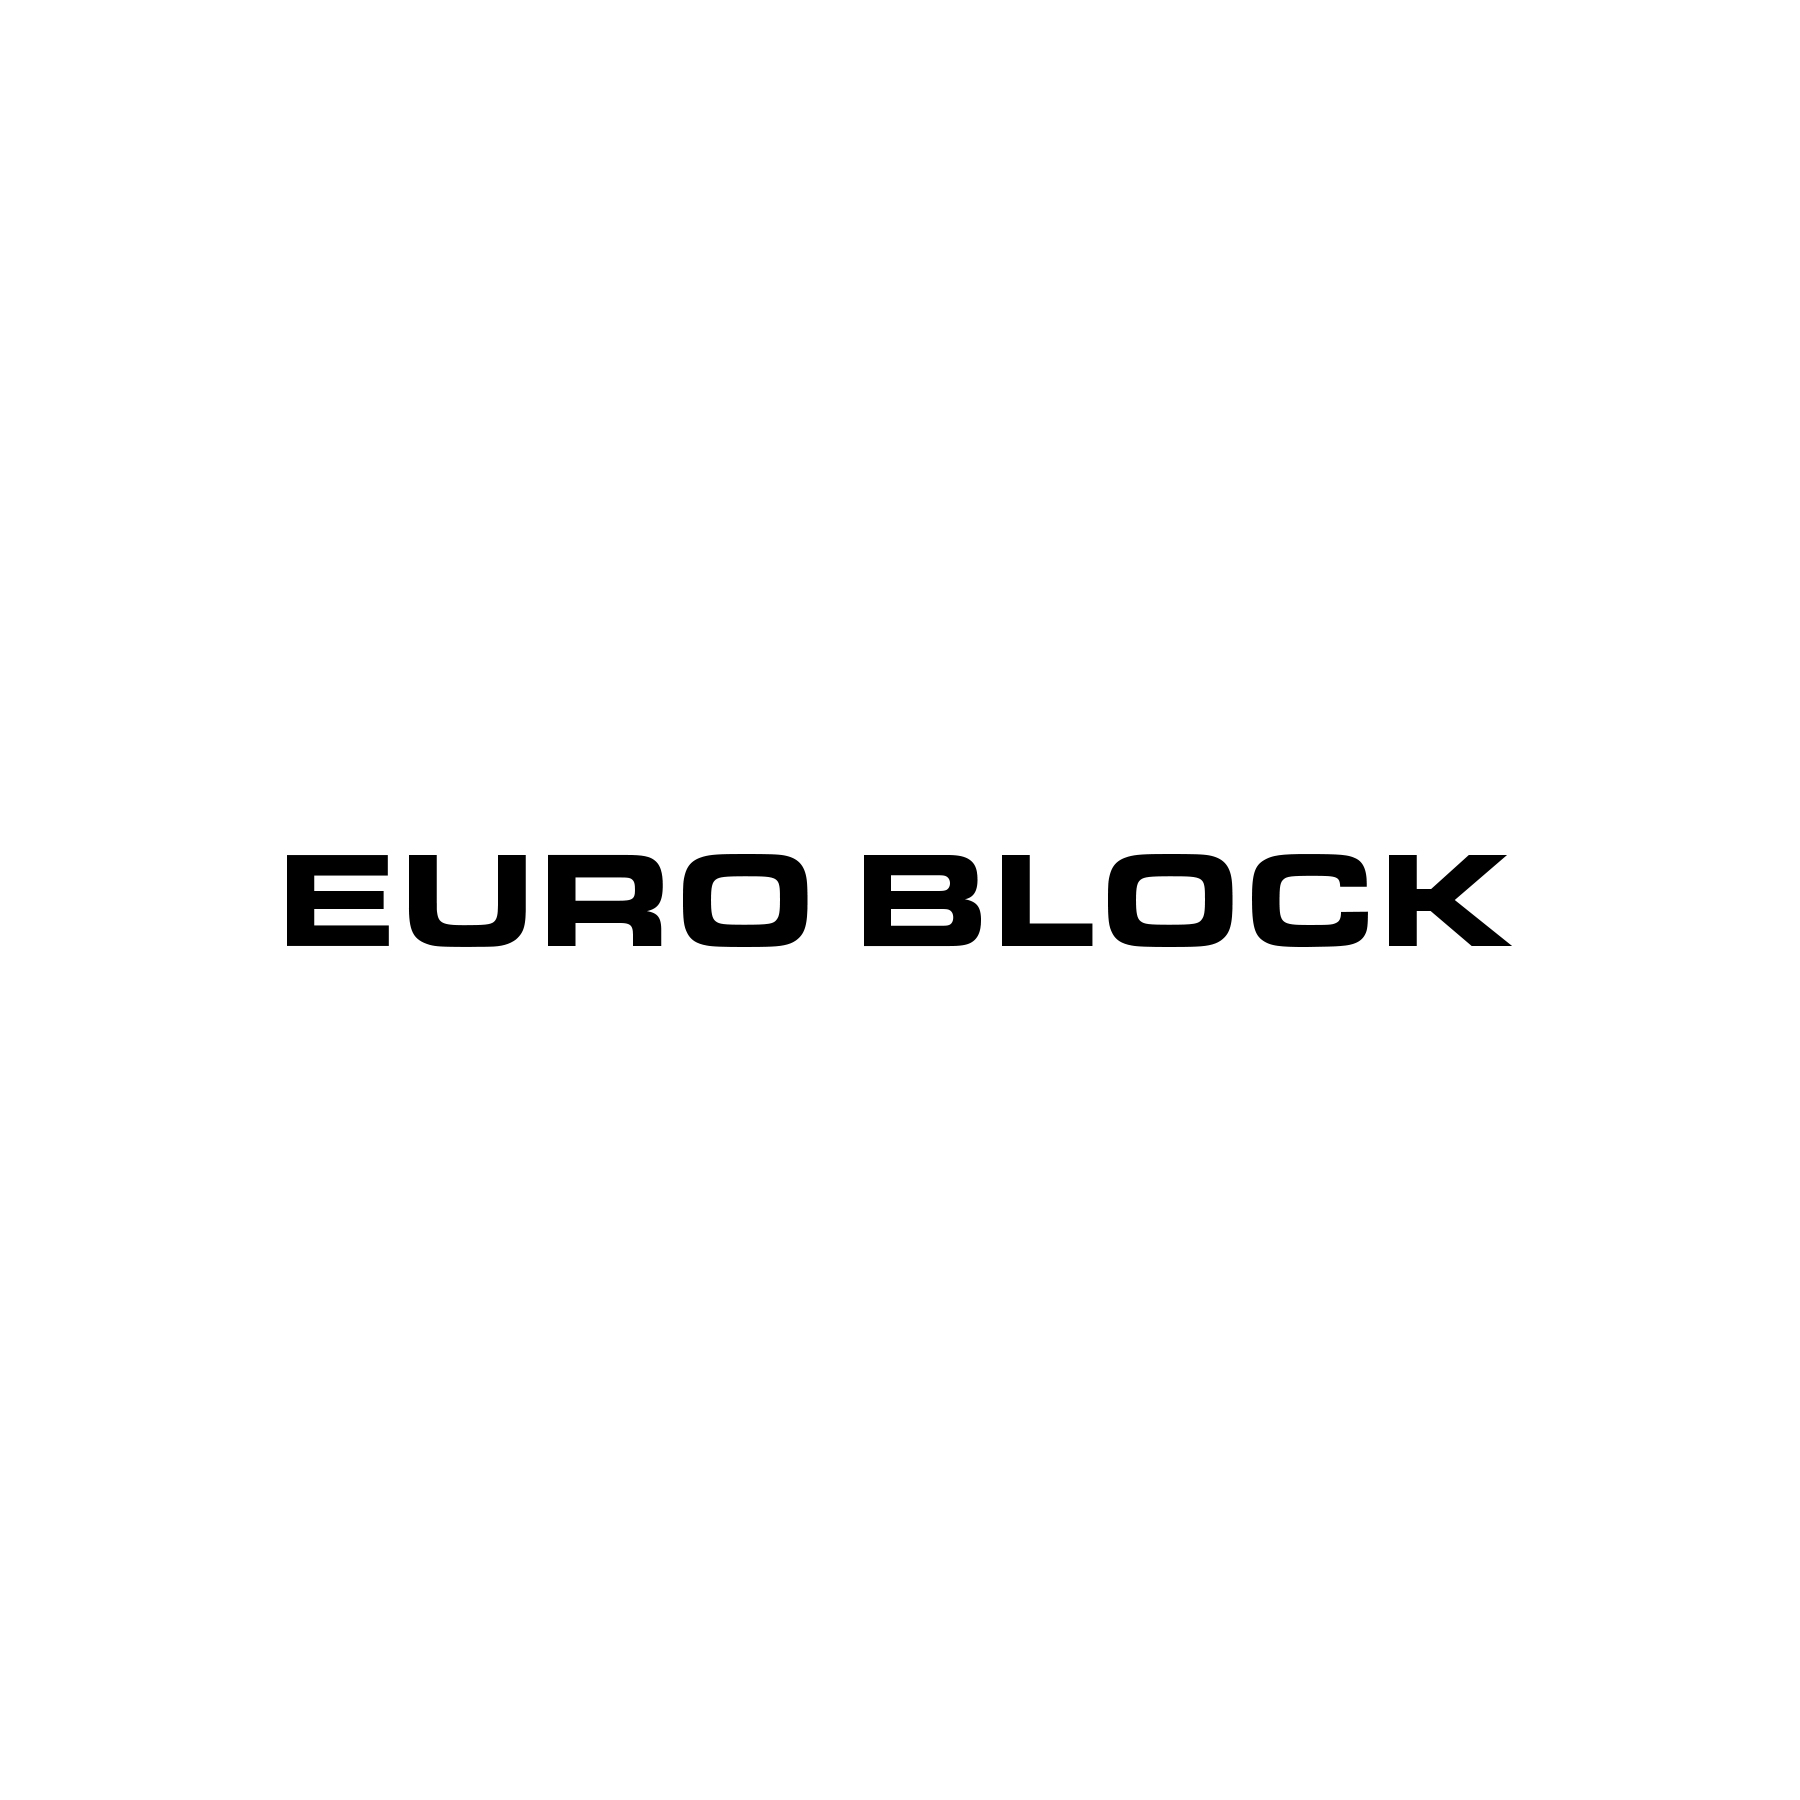 Euro Block Font Option Budget Logo Express by Brand G Creative 07 OCTOBER 2017.jpg